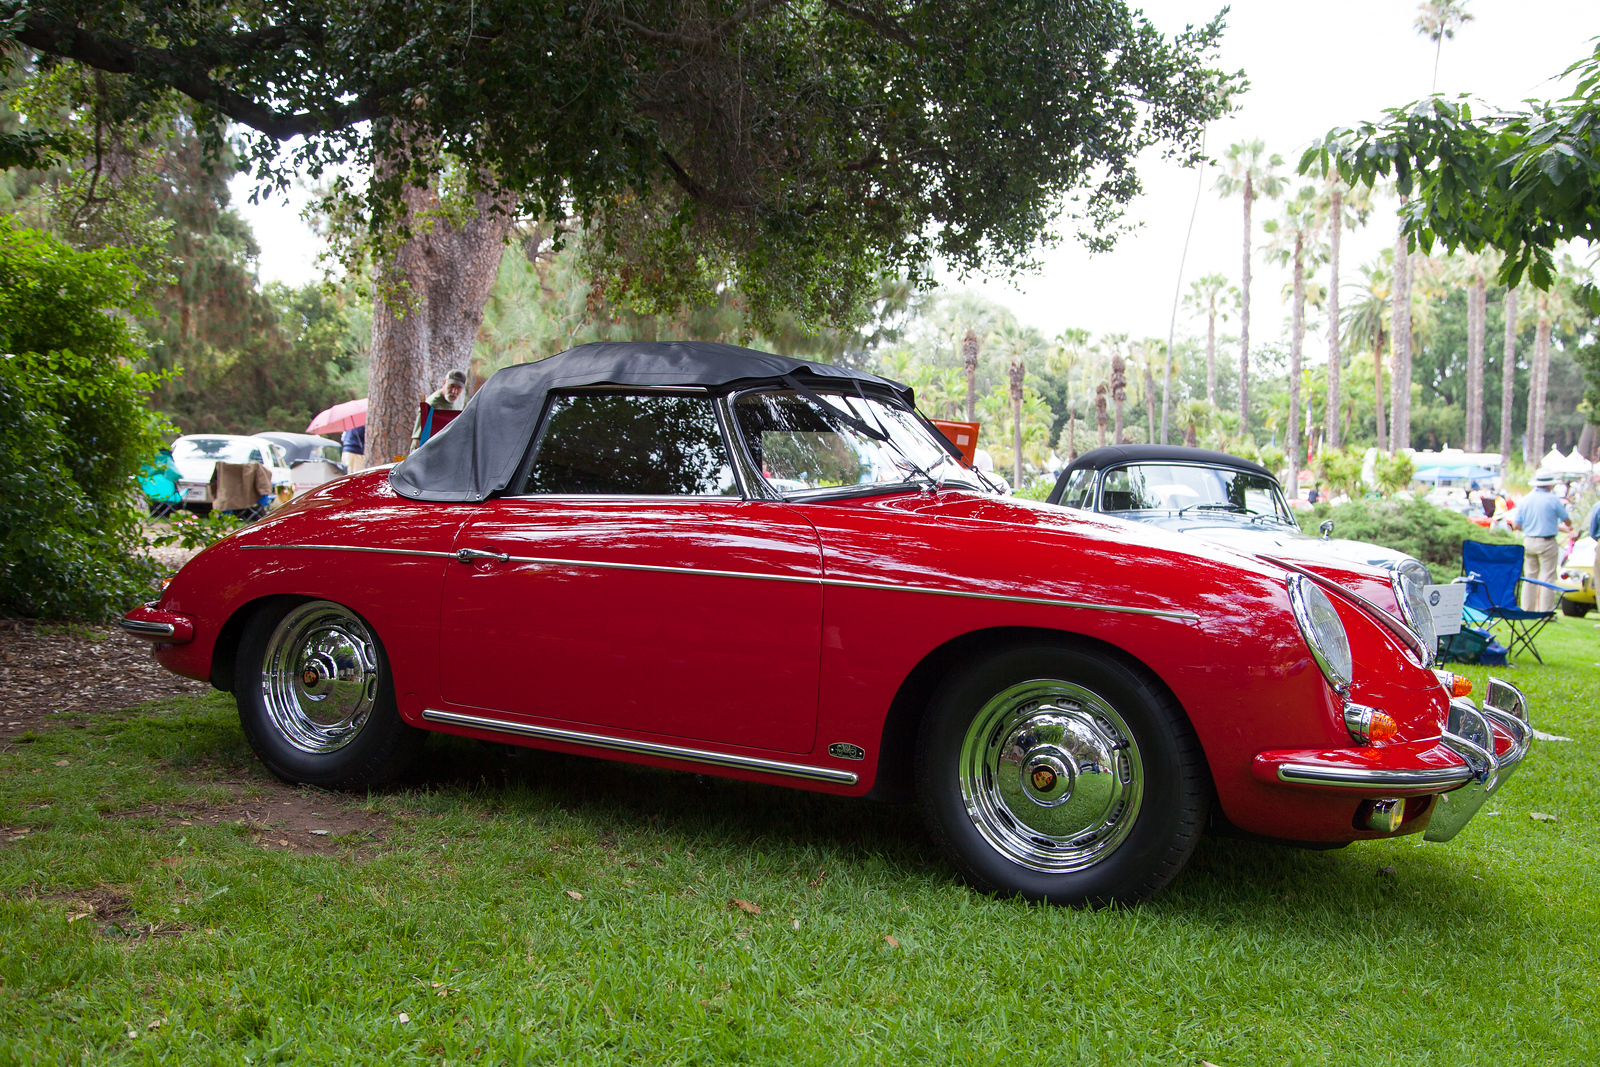 1962 Porsche 356B 1600 S. Roadster, owned by William & Teresa Tripodi